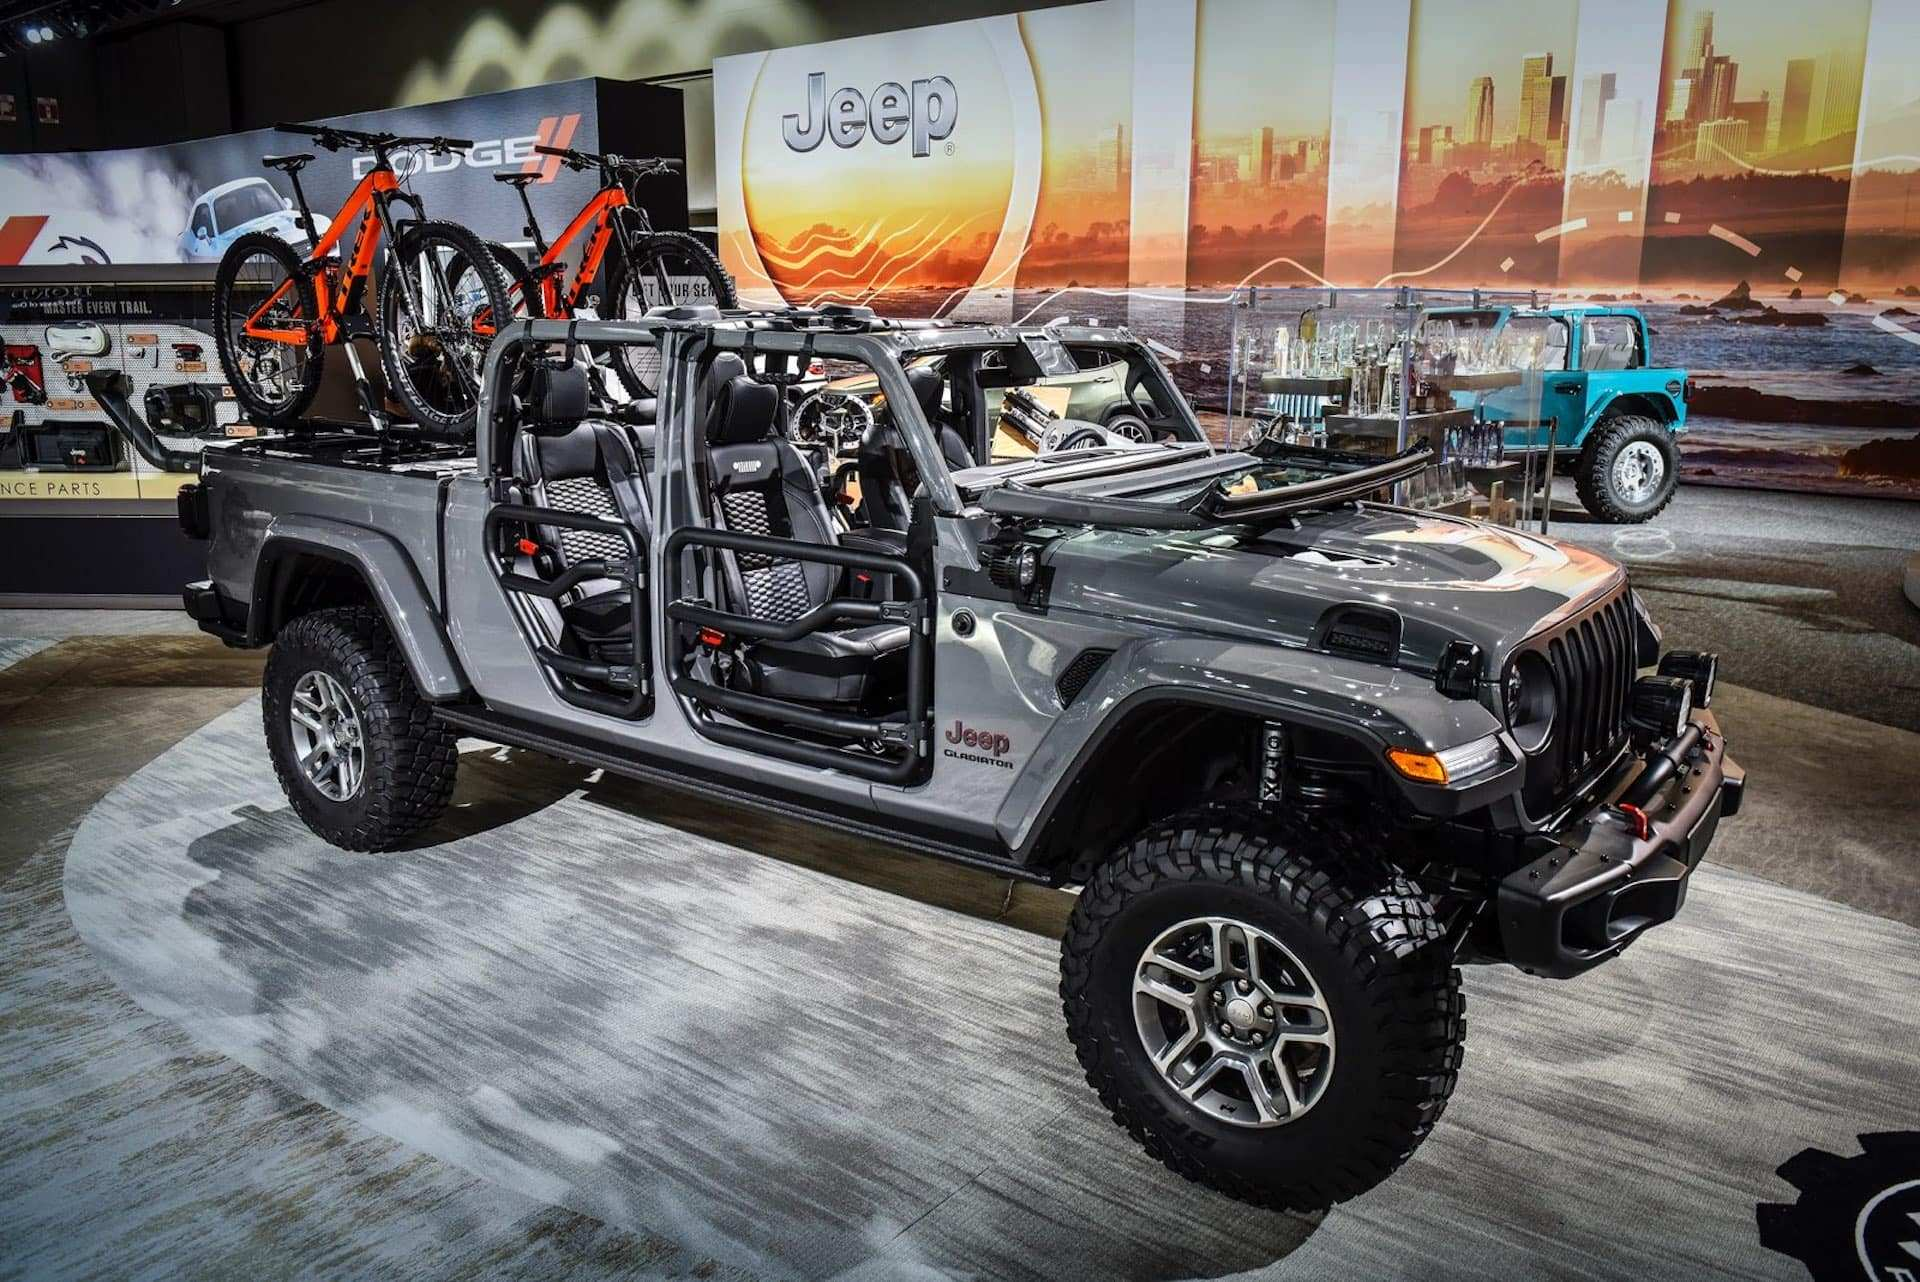 95 The Best 2020 Jeep Gladiator Aftermarket Parts Research New